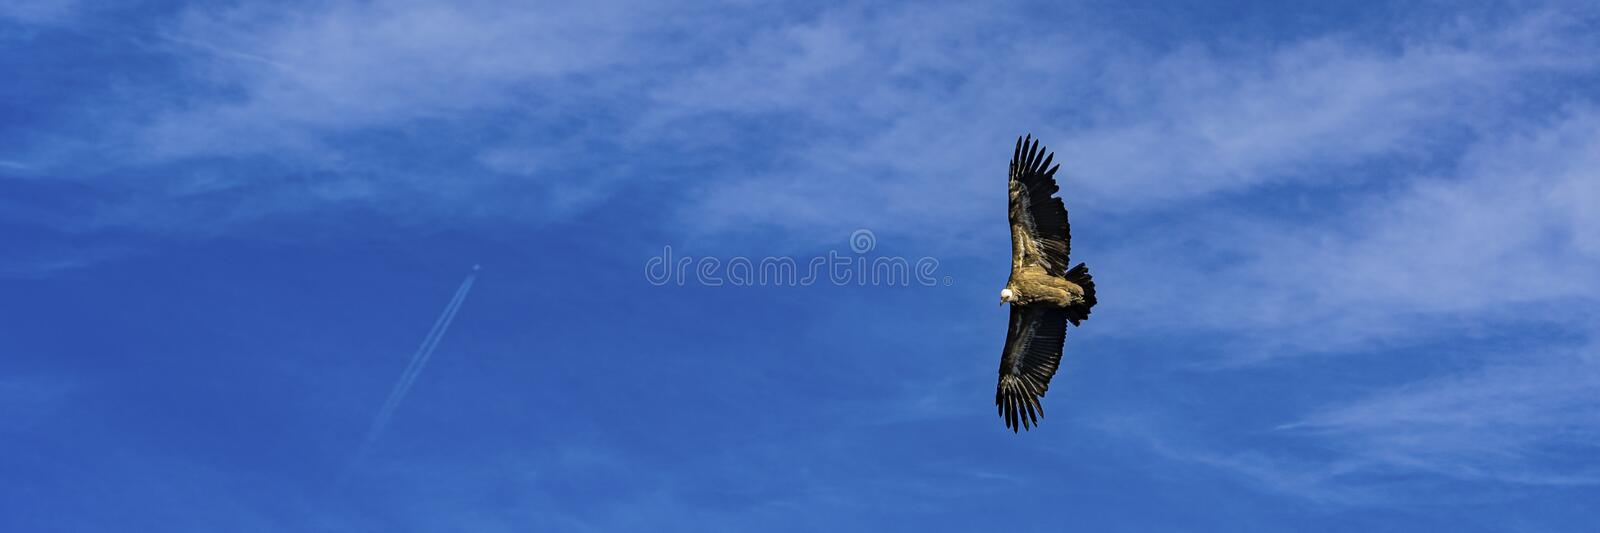 Griffon vulture taken from above while flying in the Verdon Gorges in France stock photography